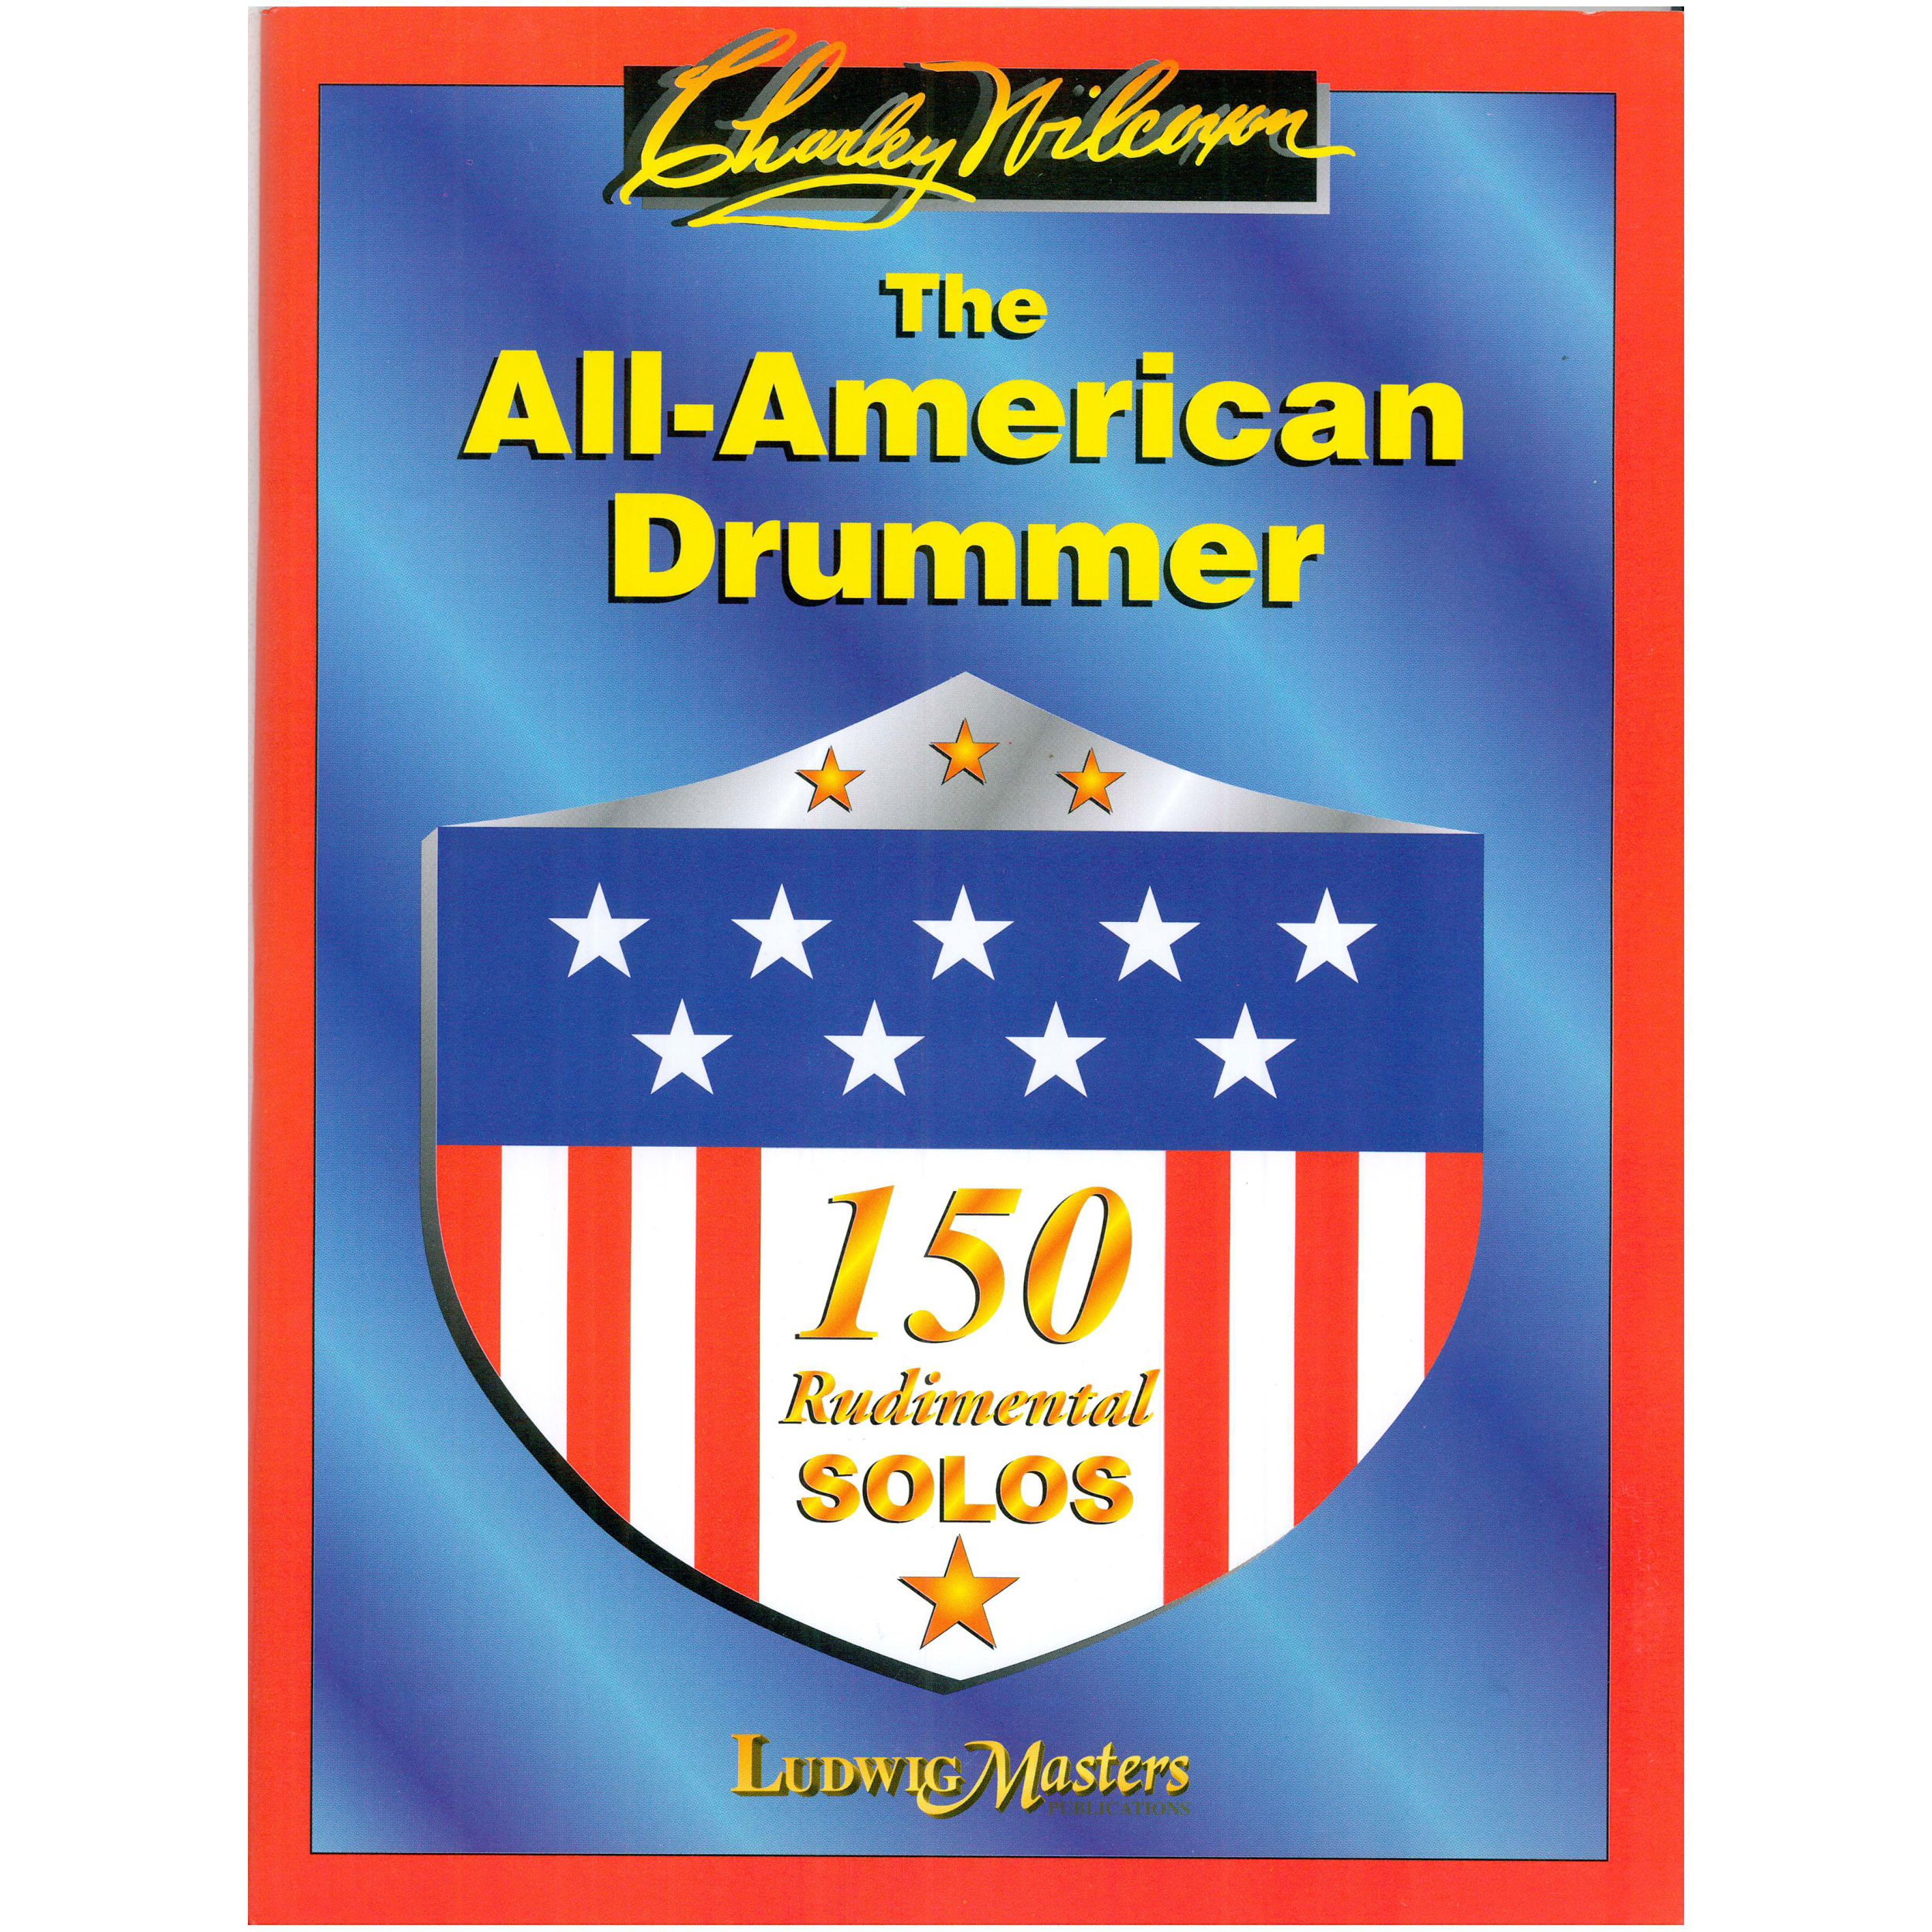 The All-American Drummer by Charley Wilcoxon